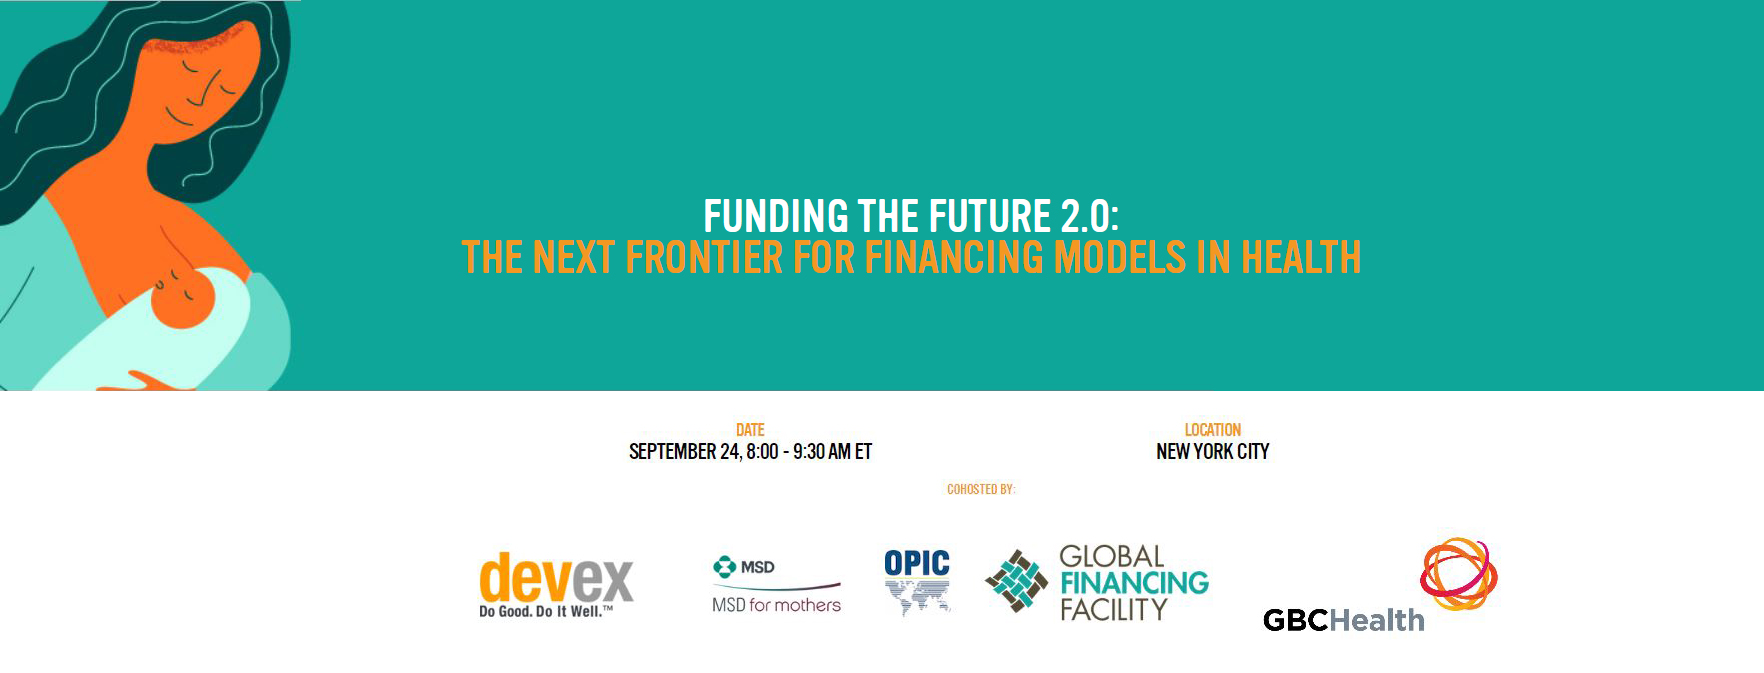 Funding the Future 2 0: The next frontier for financing